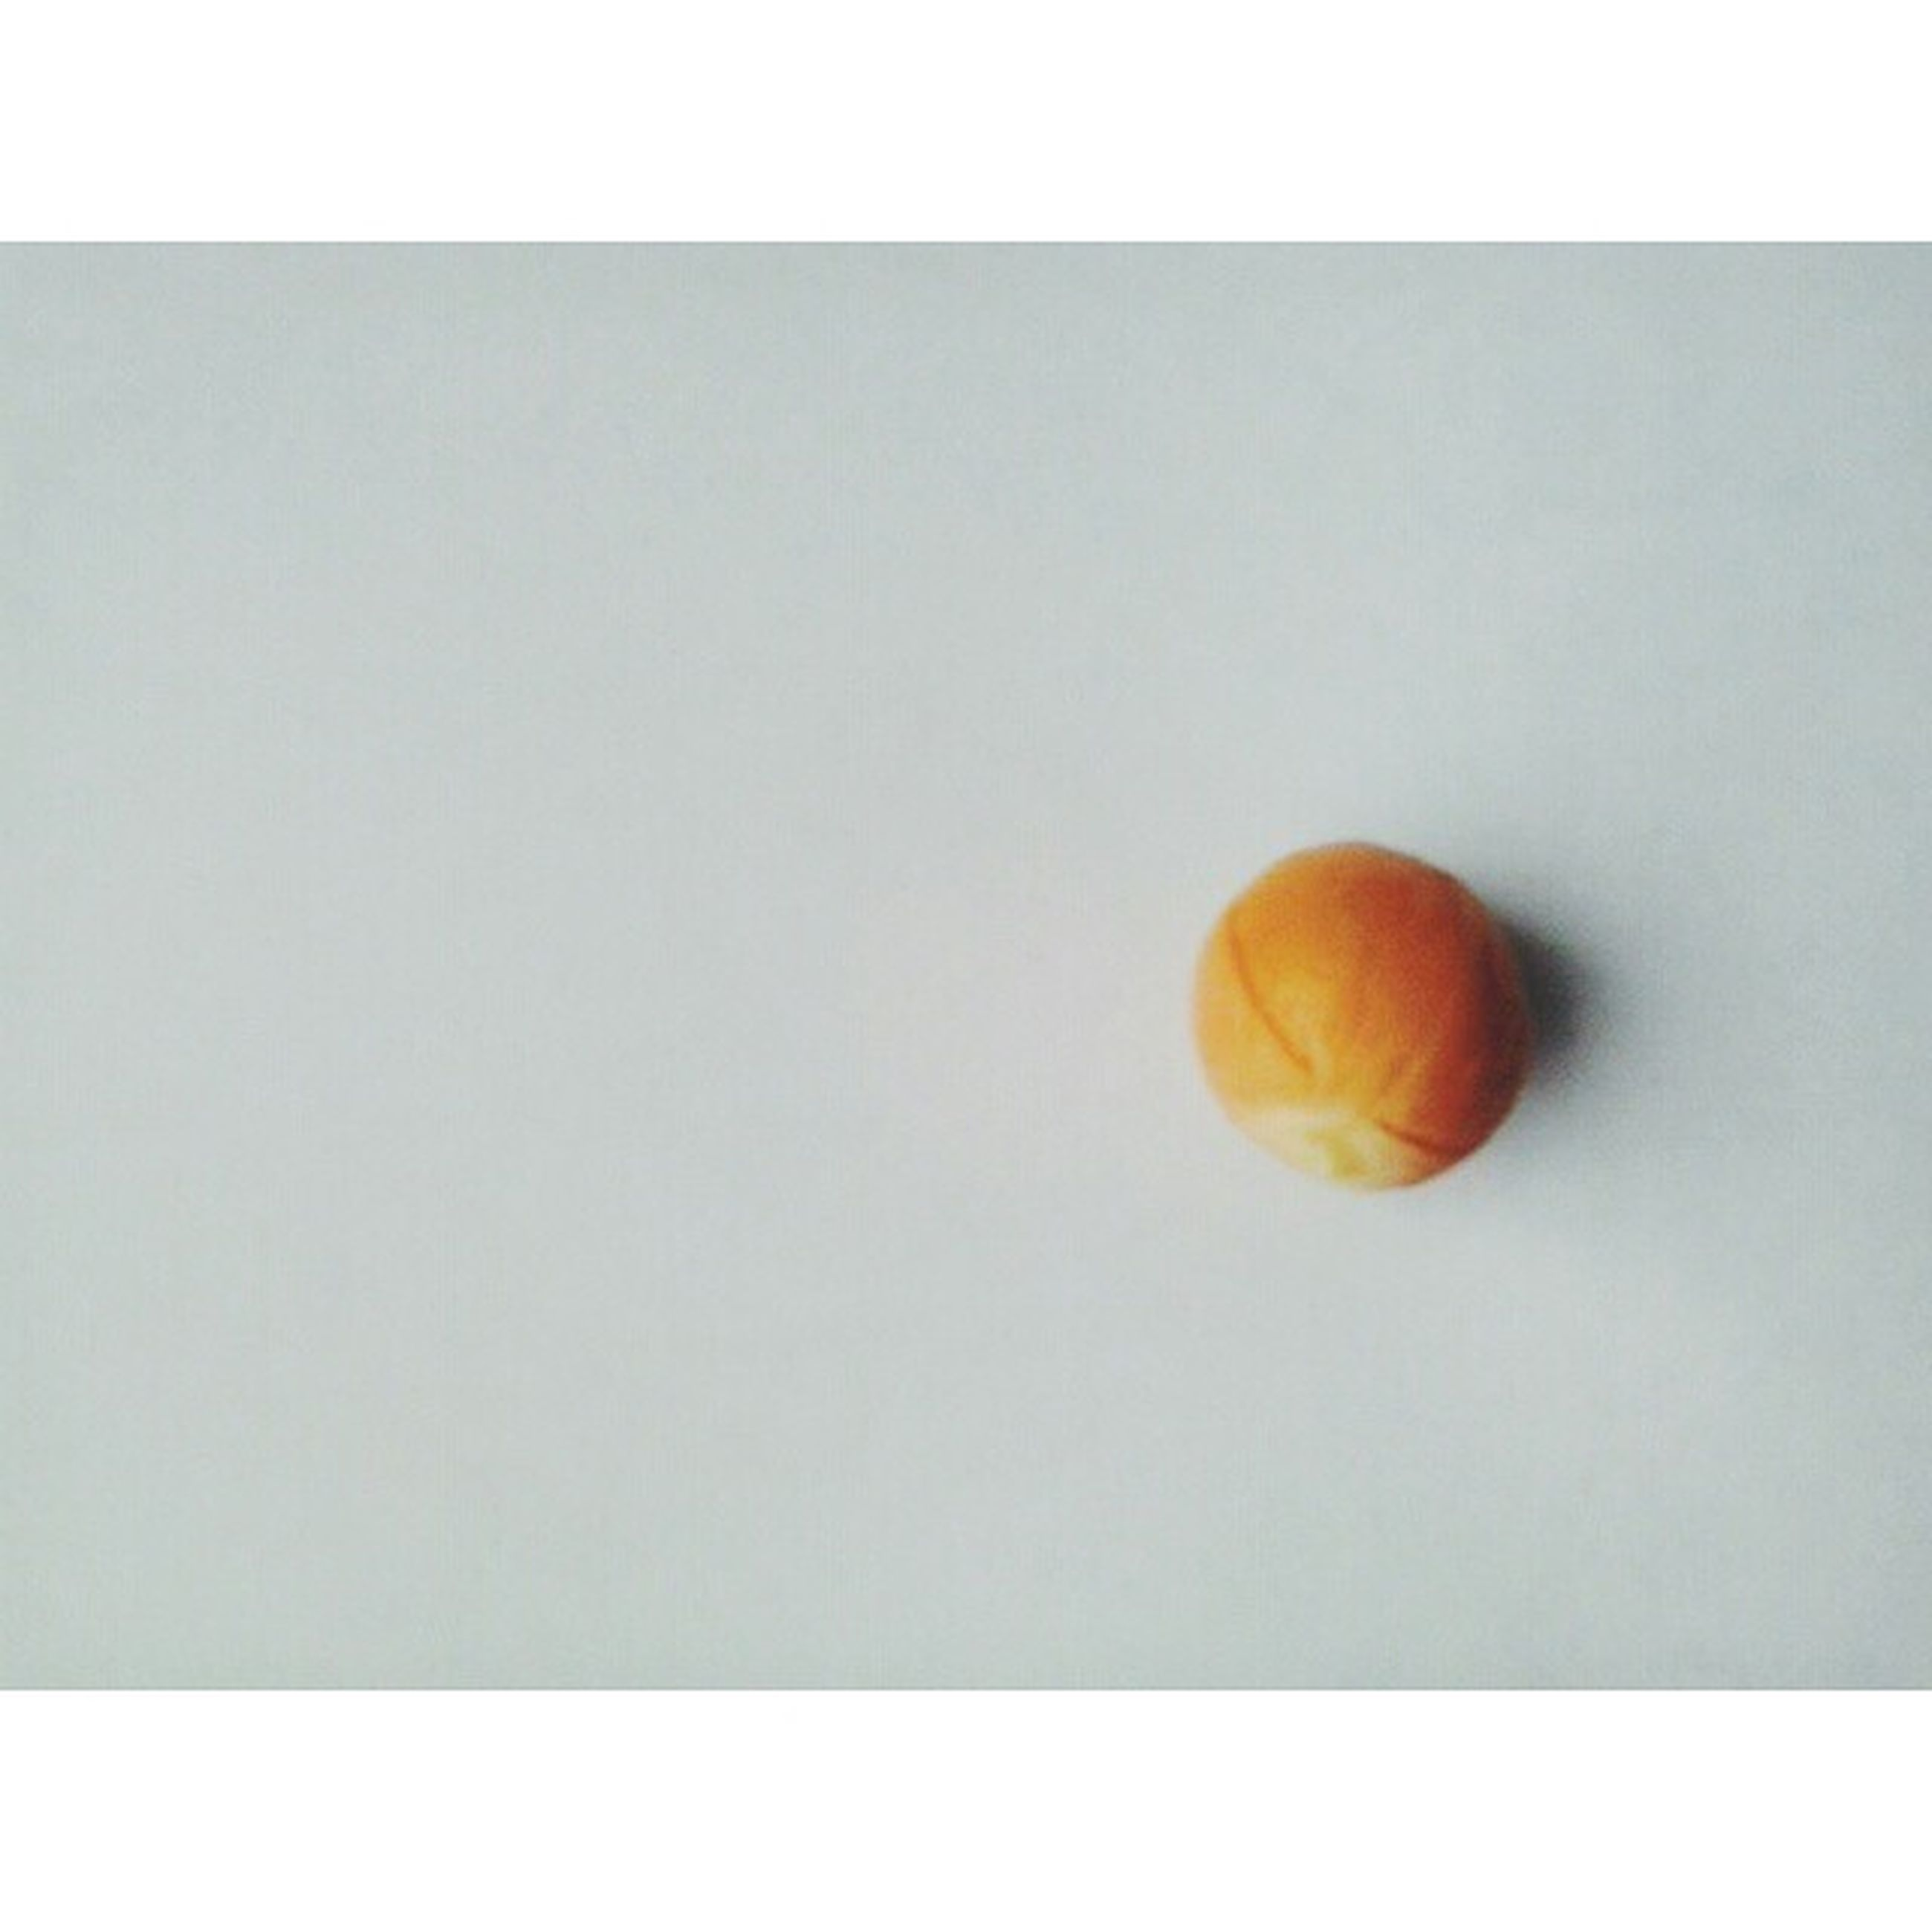 transfer print, auto post production filter, food and drink, still life, copy space, studio shot, single object, yellow, high angle view, close-up, fruit, indoors, white background, healthy eating, food, table, no people, freshness, directly above, orange color